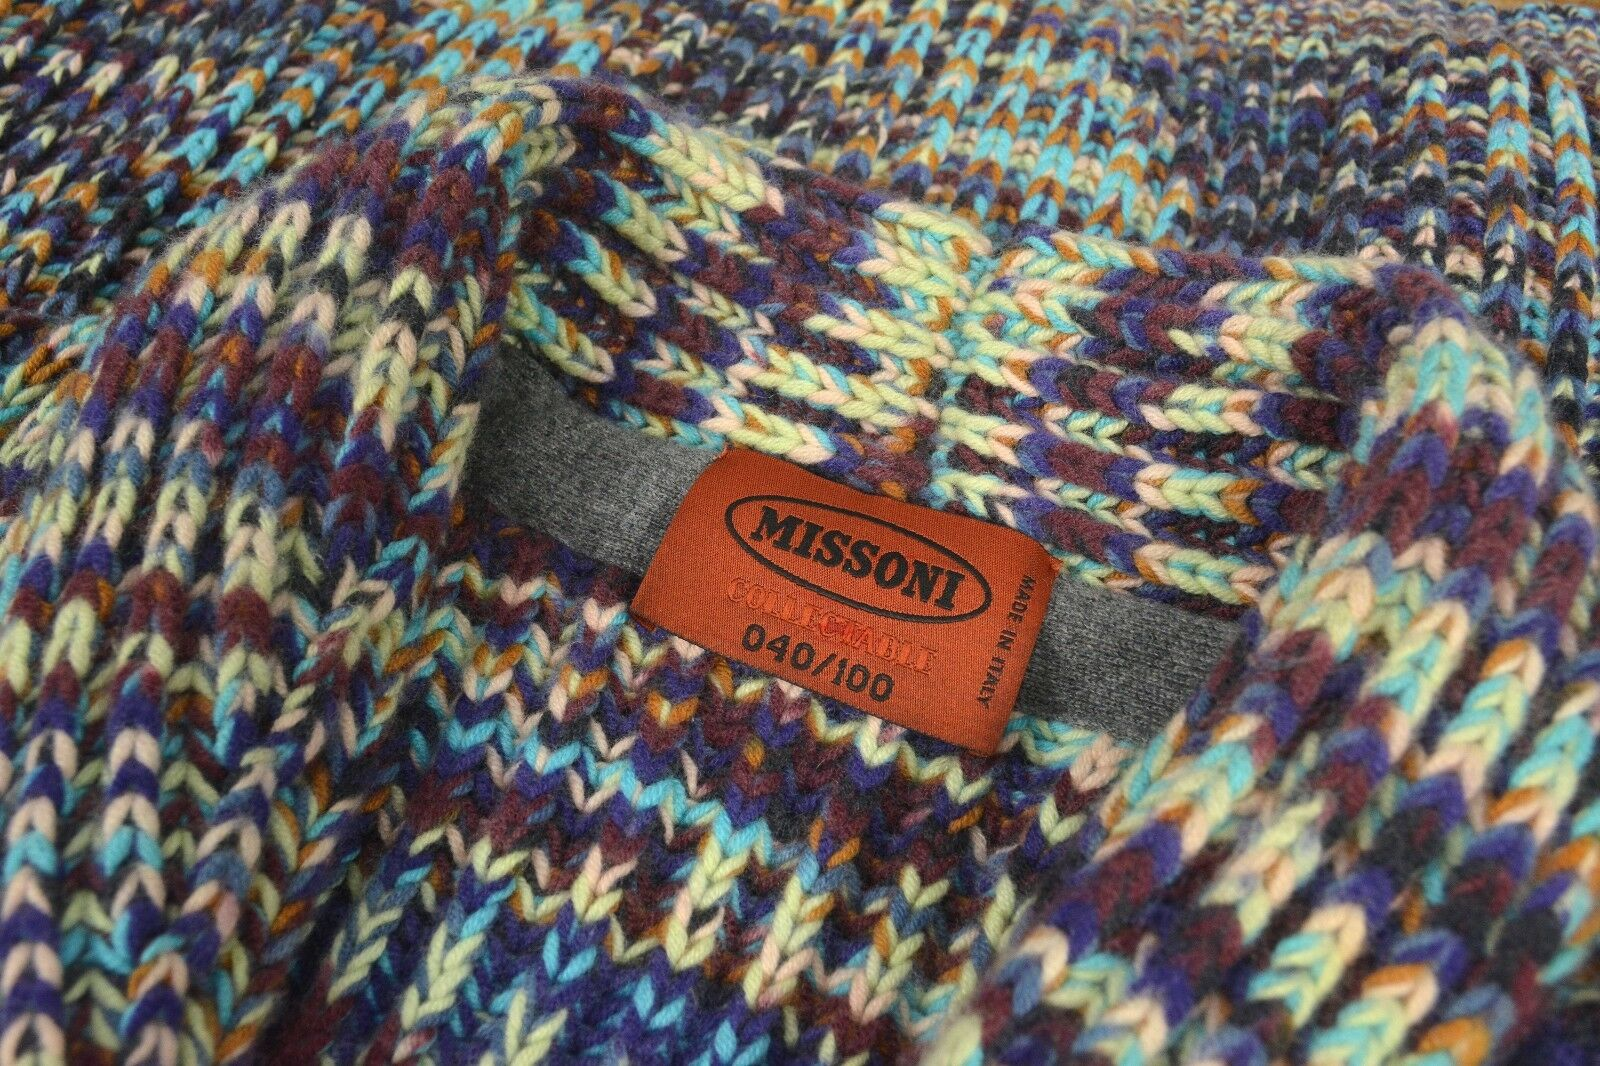 MISSONI COLLECTABLE  040/100  2750  Hand Woven in  CASHMERE Sweater XXL